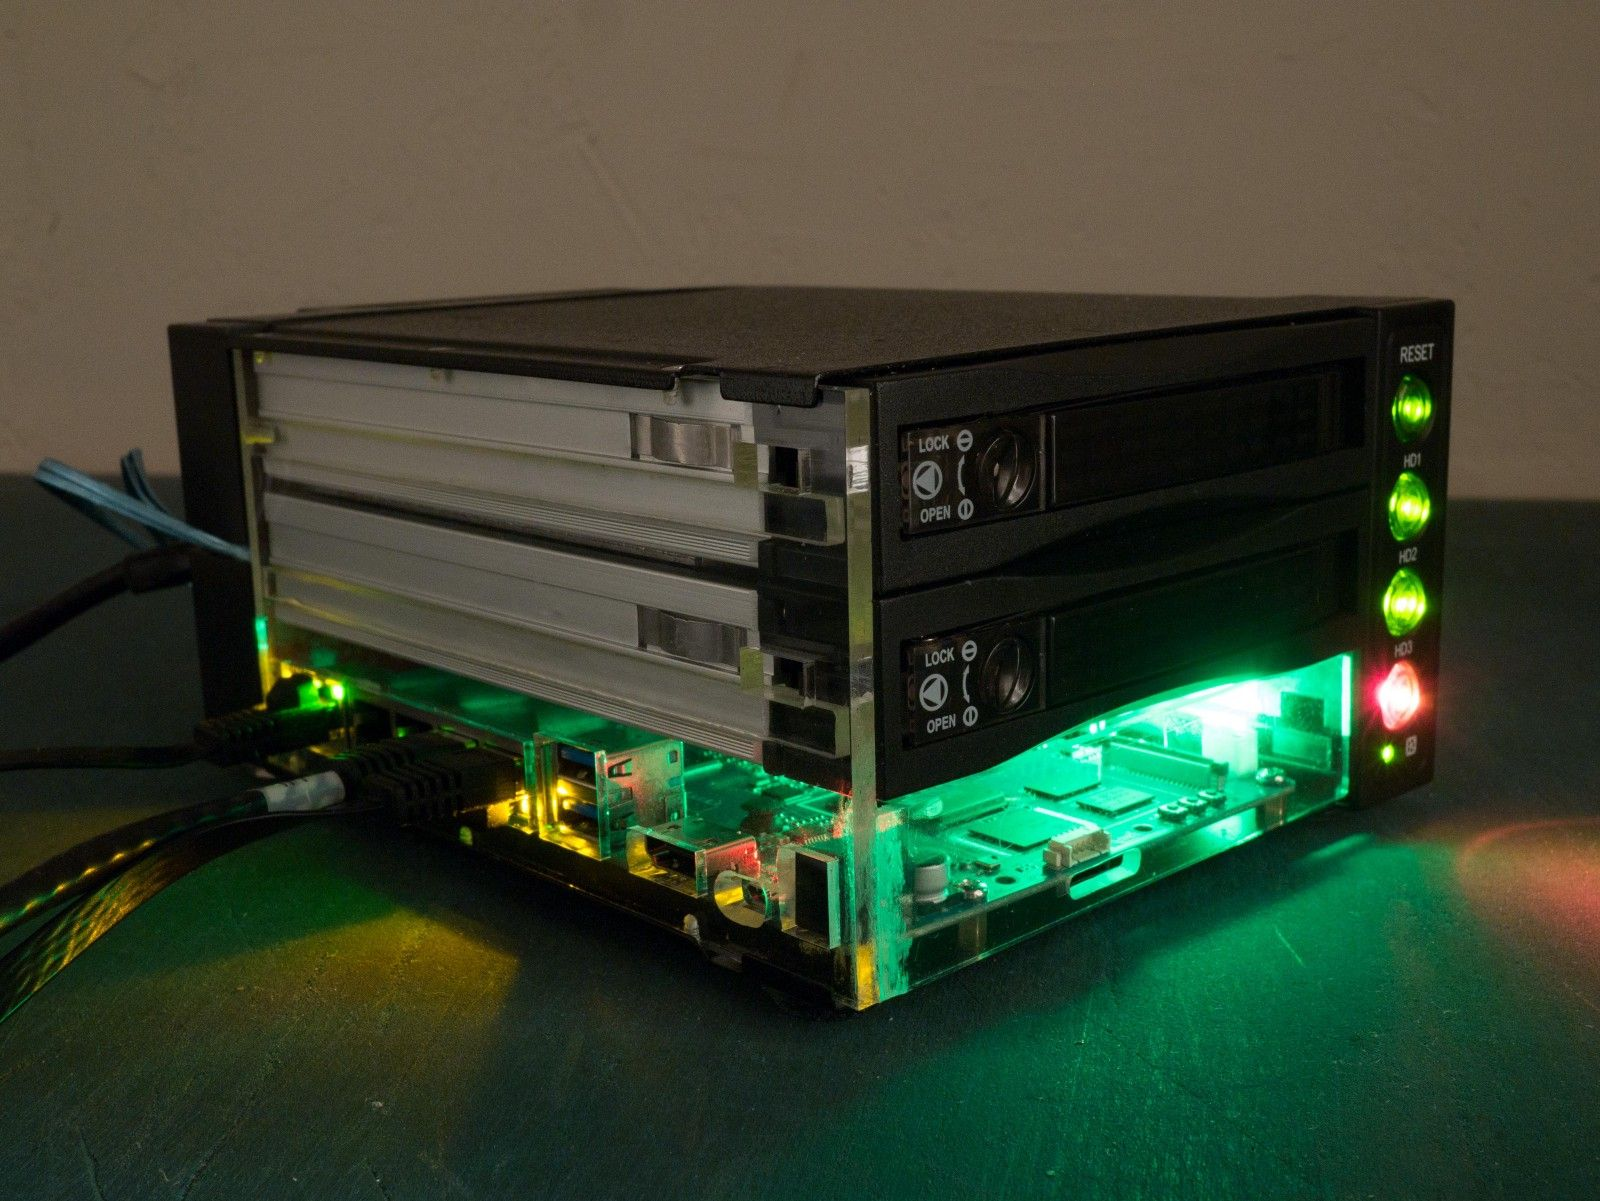 Build Your Own NAS/Router on a Budget with the Banana Pi